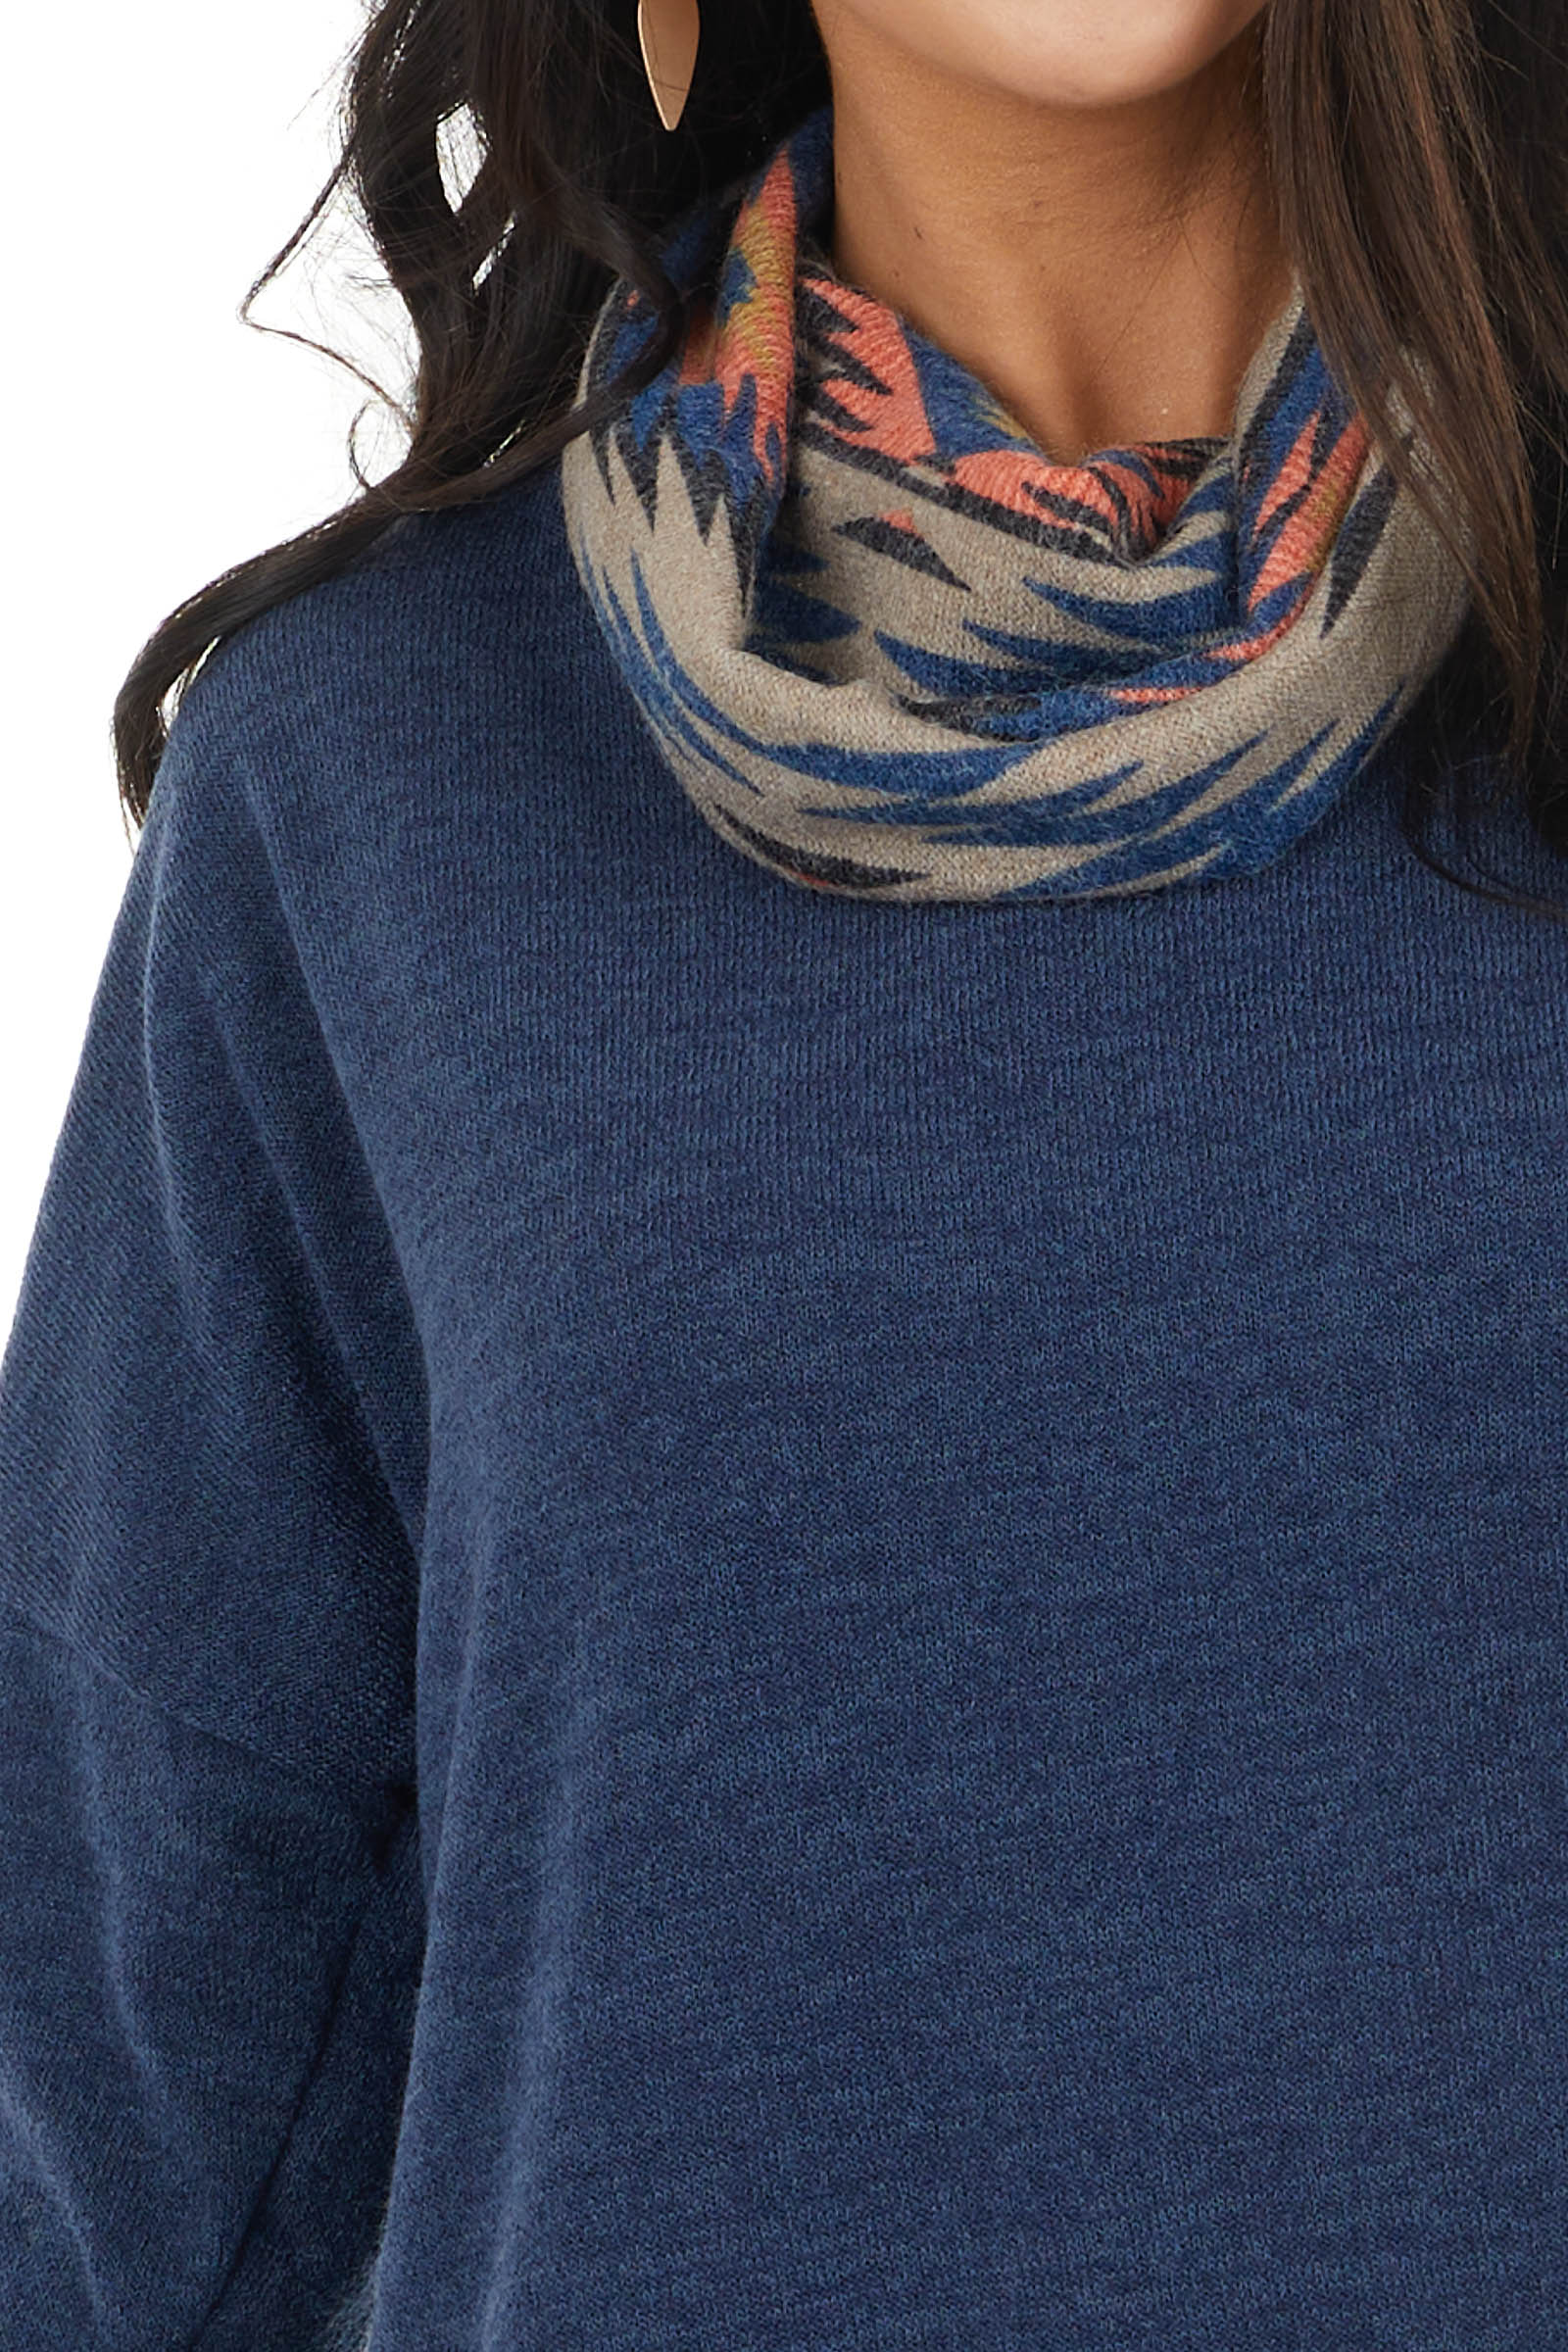 Stormy Blue Two Tone Knit Top with Aztec Print Cowl Neck